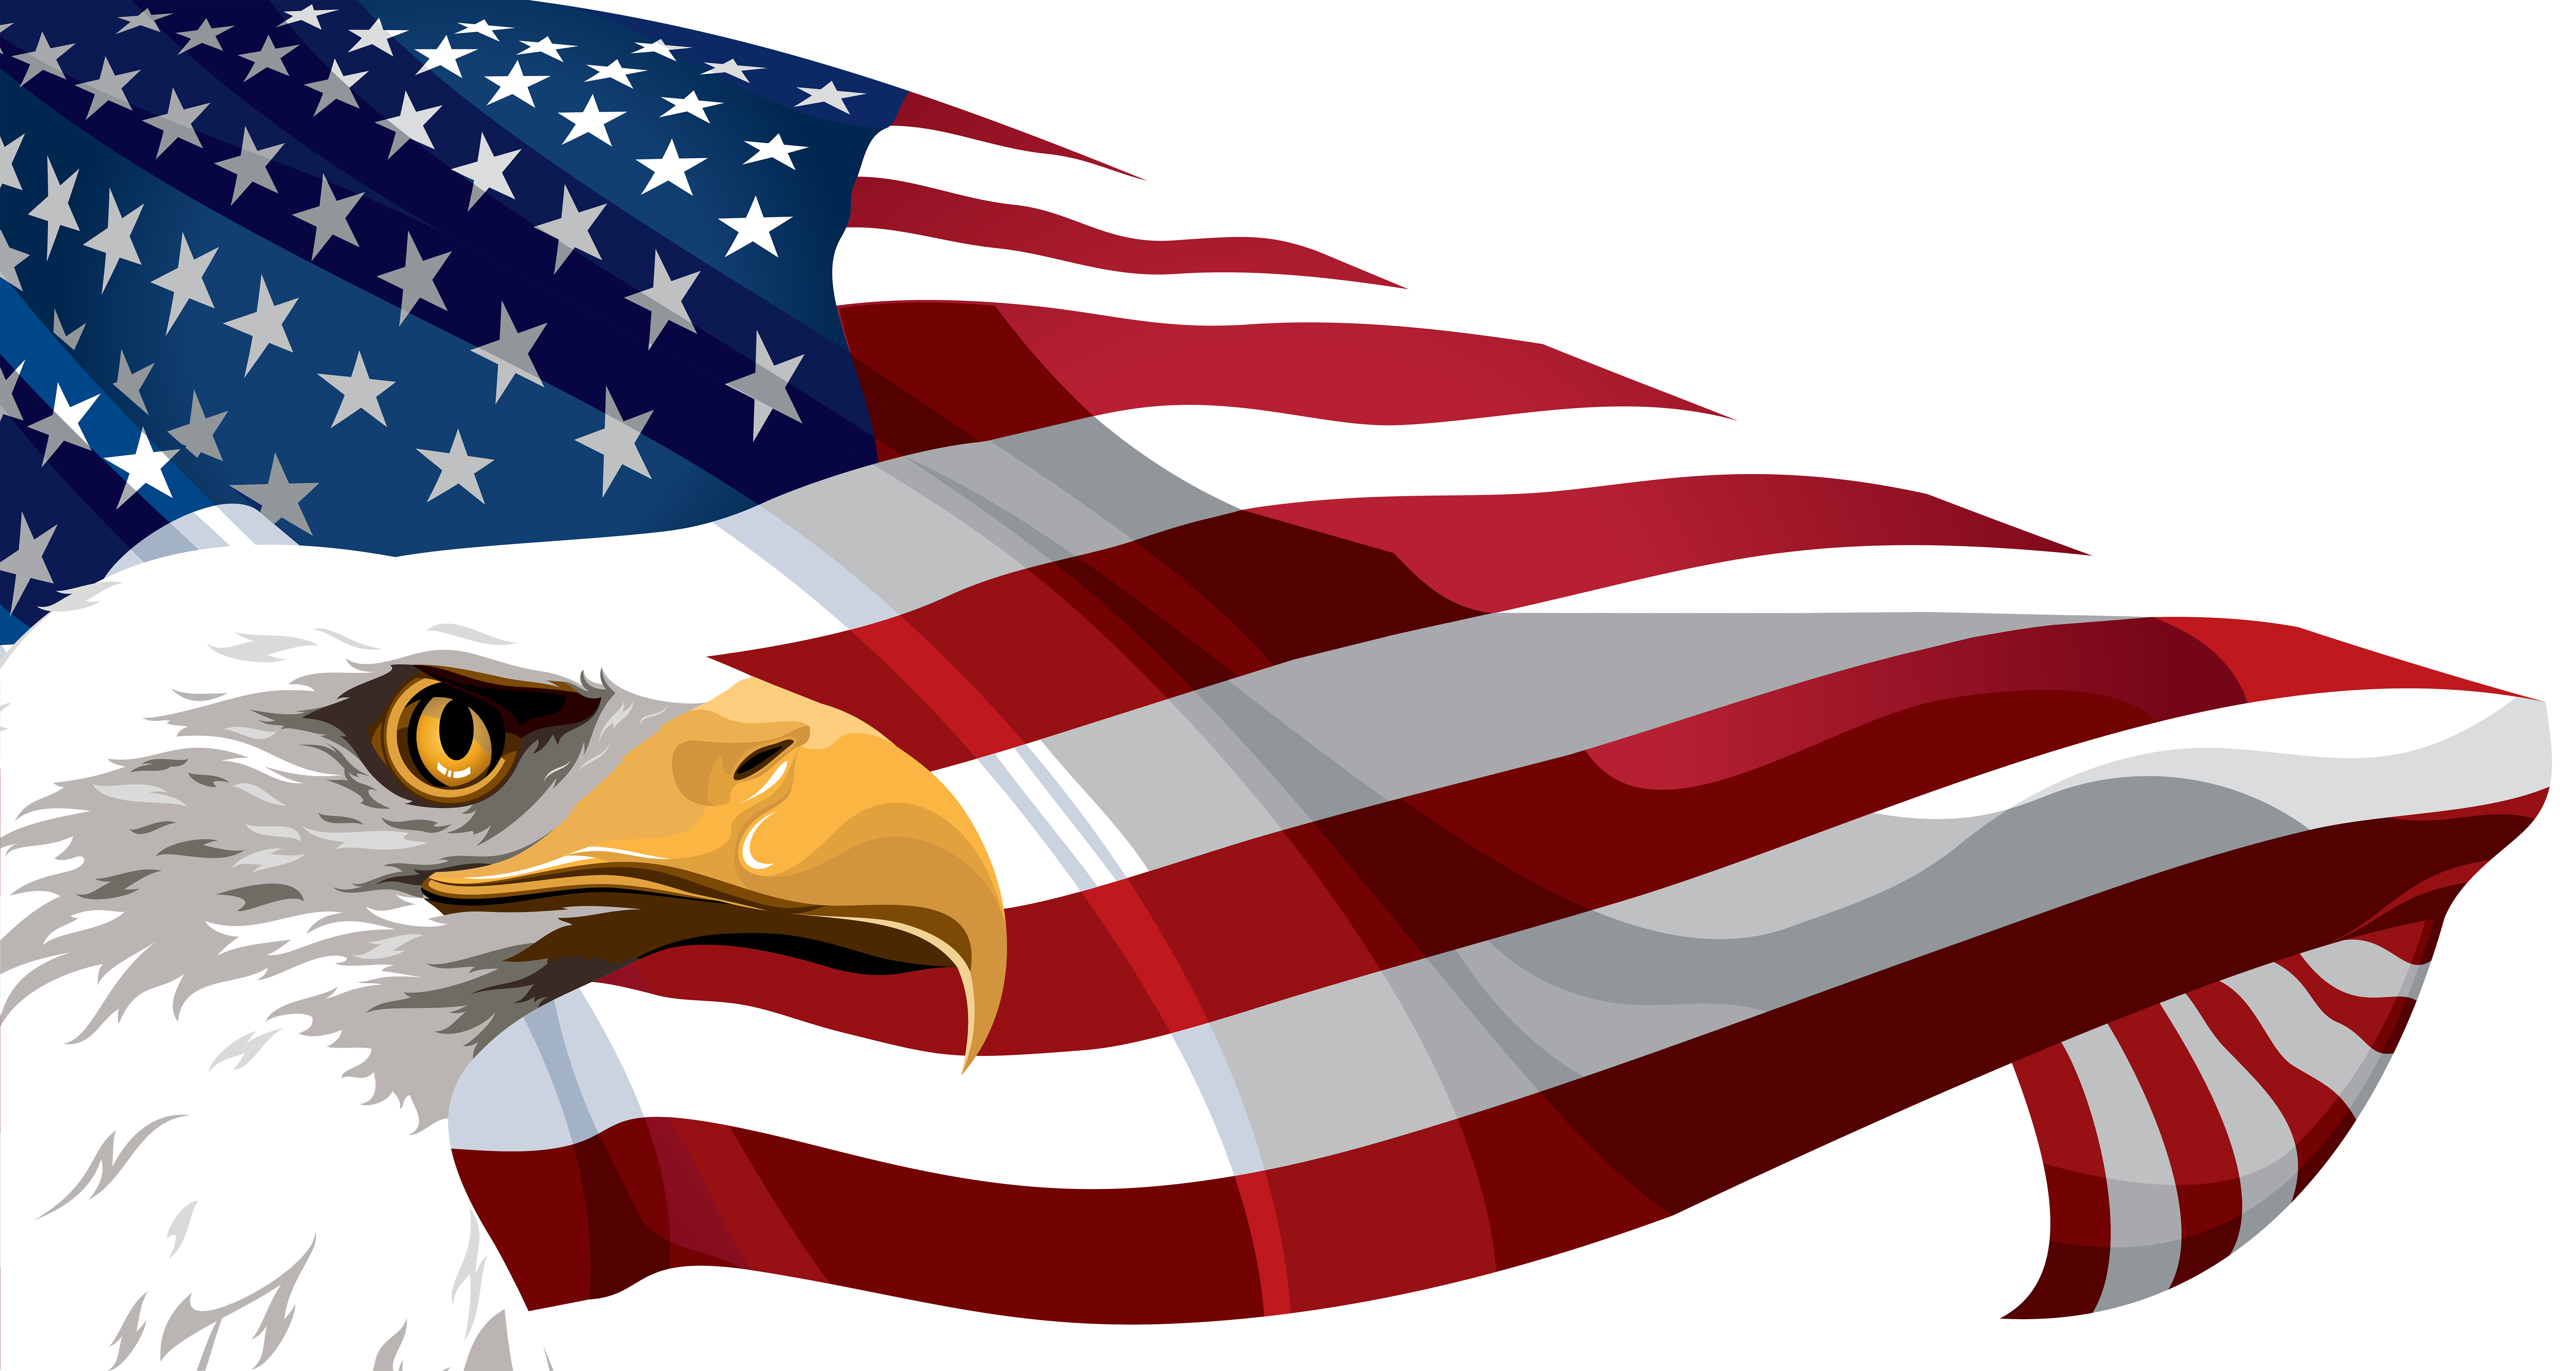 Eagle clipart red. Flag of the united